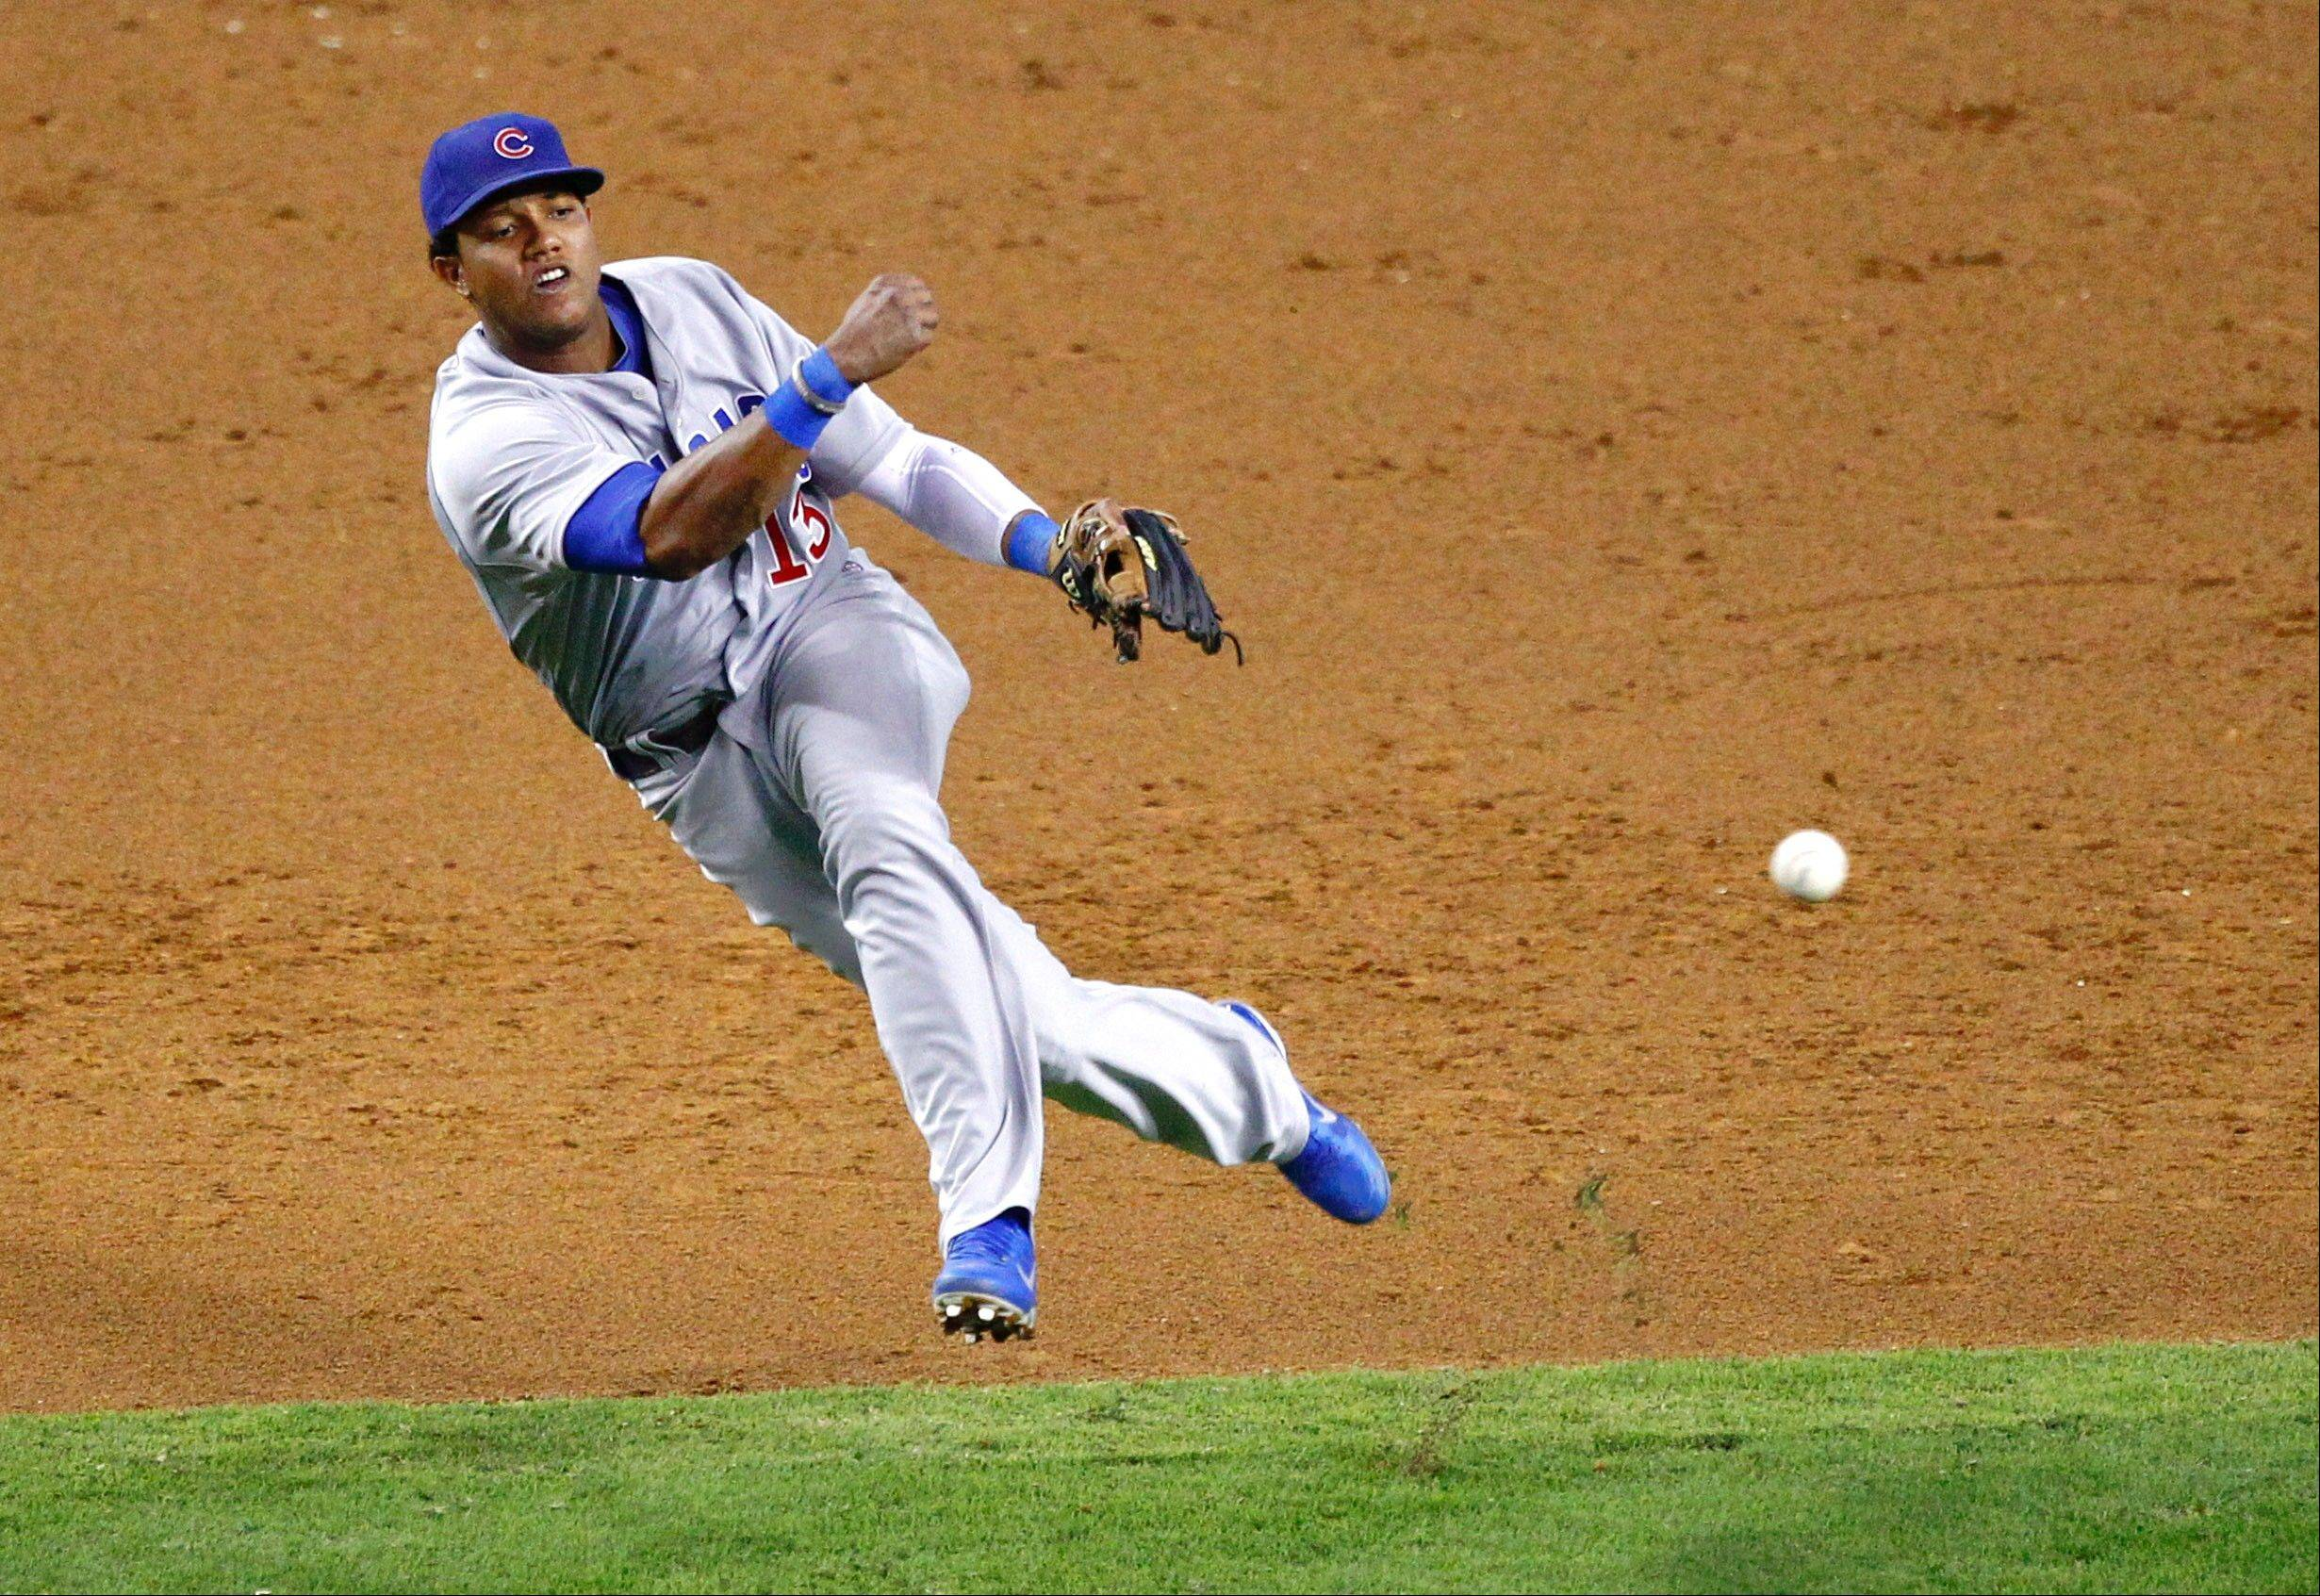 Chicago Cubs' Starlin Castro can't throw out Arizona Diamondbacks' Chad Eaton during the eighth inning of a baseball game, Friday, Sept. 28, 2012,in Phoenix. (AP Photo/Matt York)